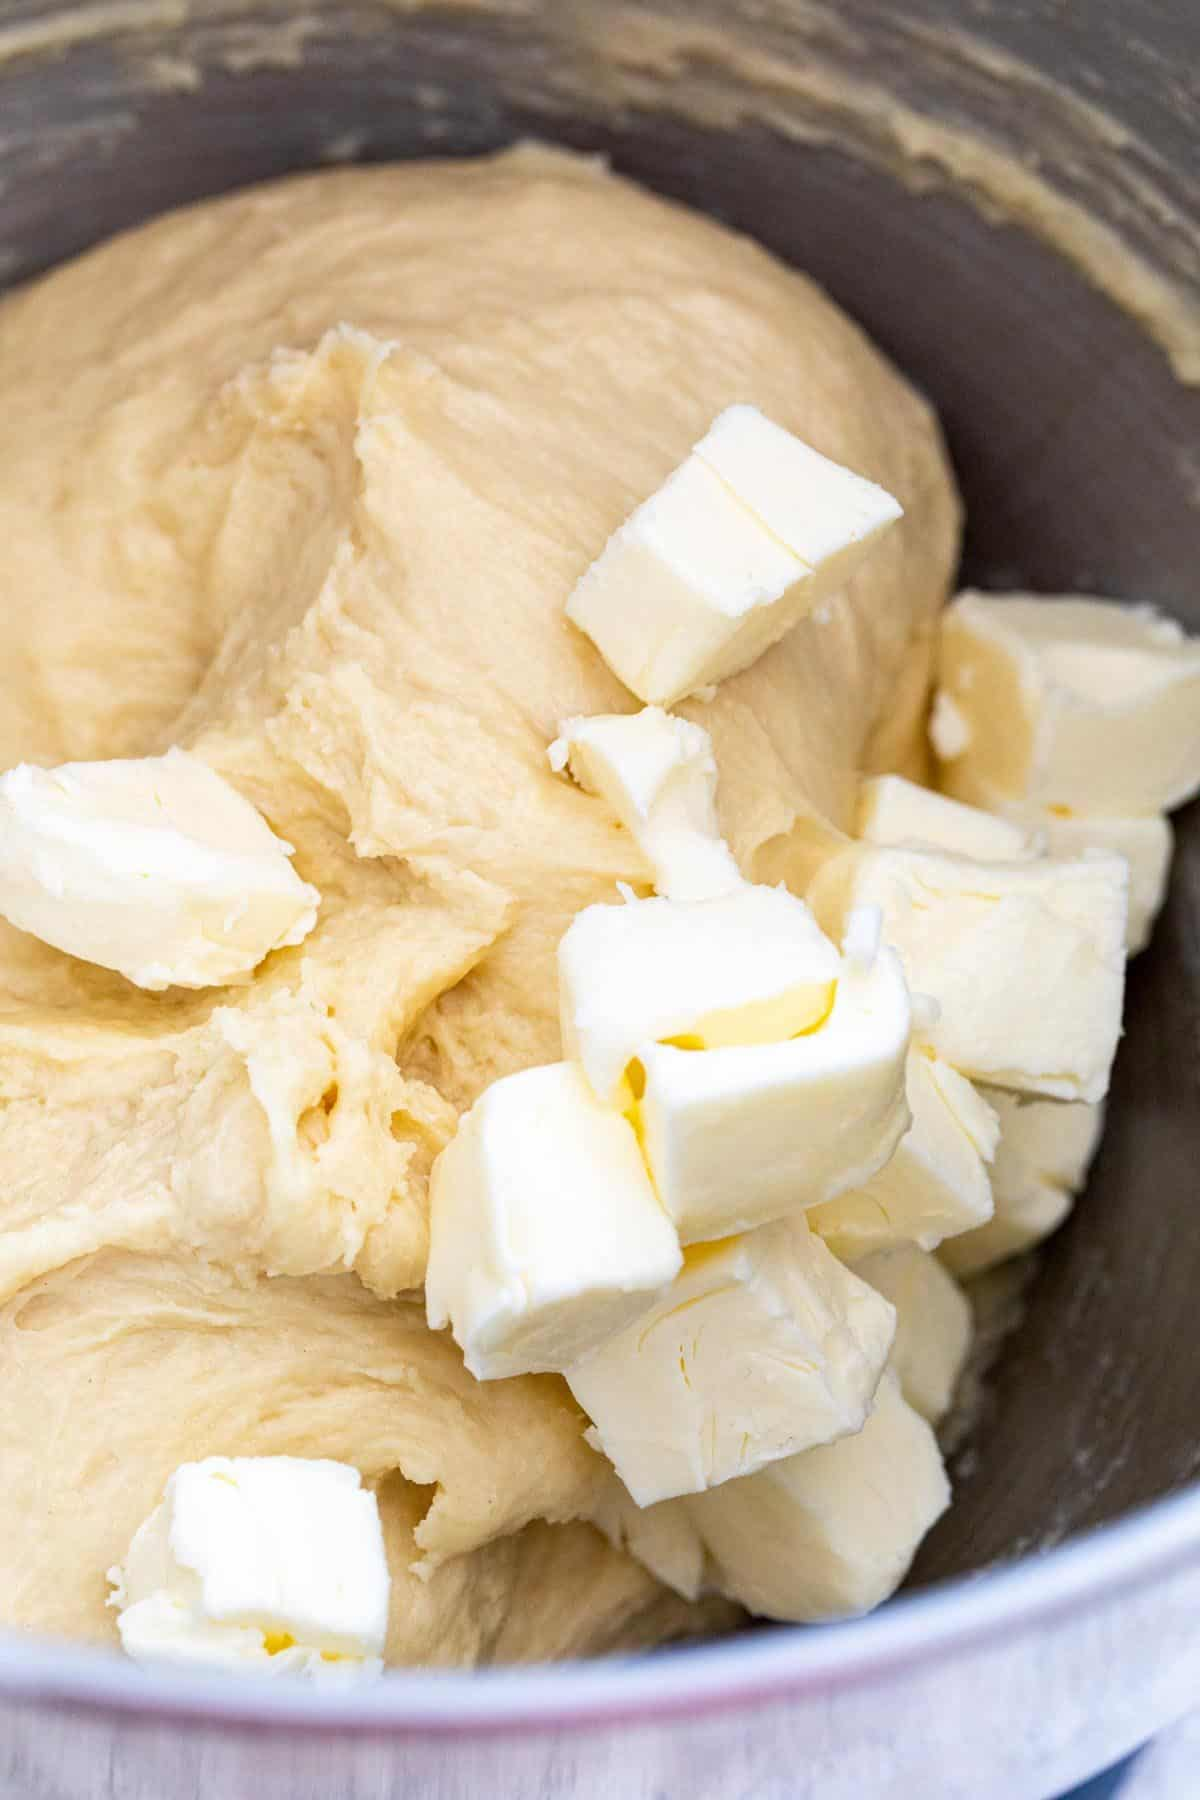 butter pieces and dough